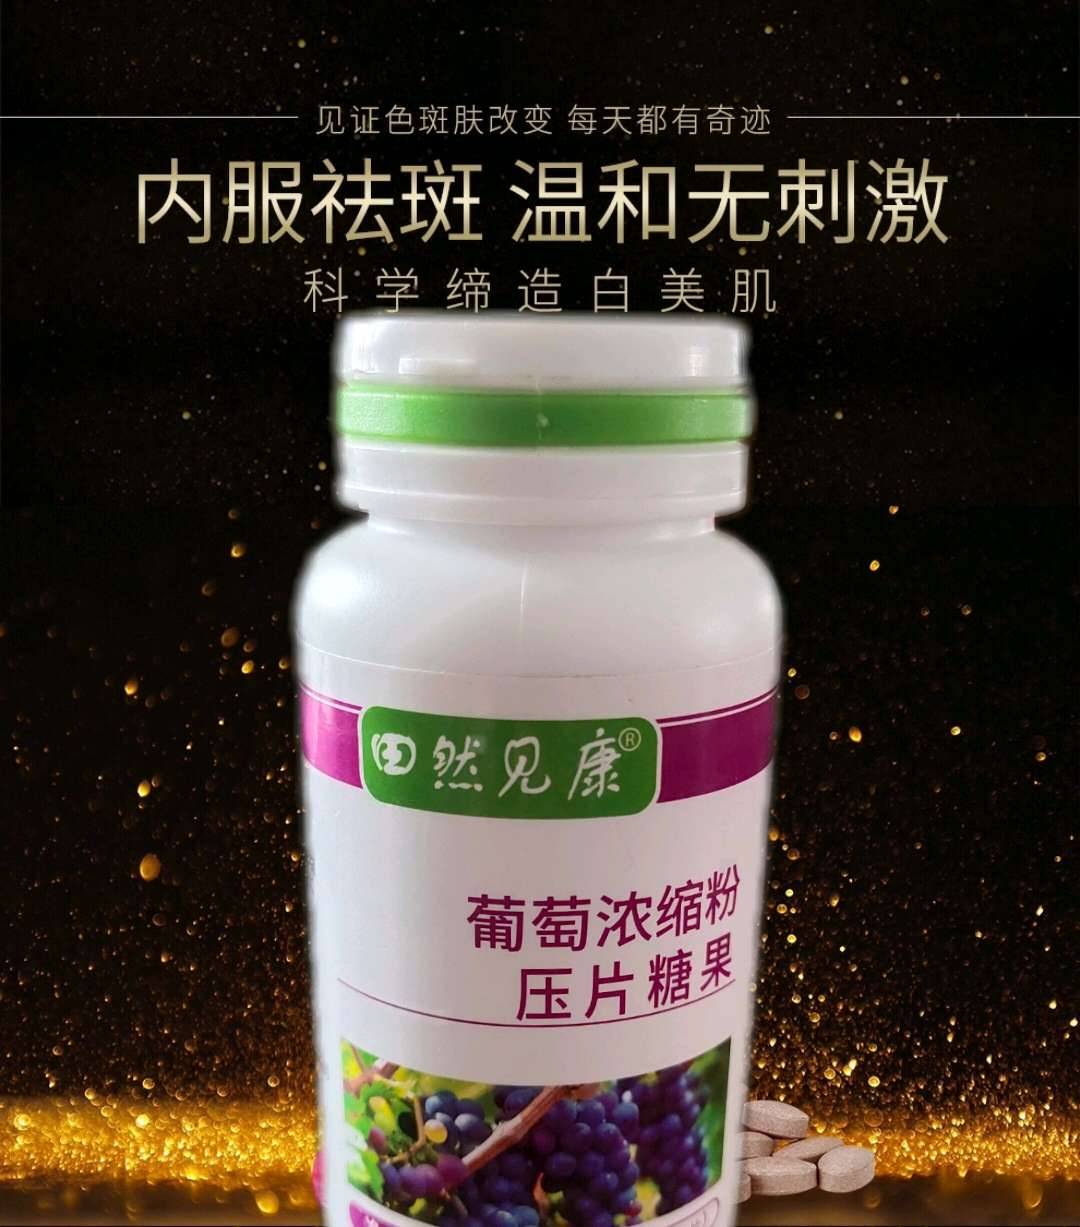 Natural healthy grape seed concentrated powder tablet confectionery beauty and beauty, light spot and health care 180 granules